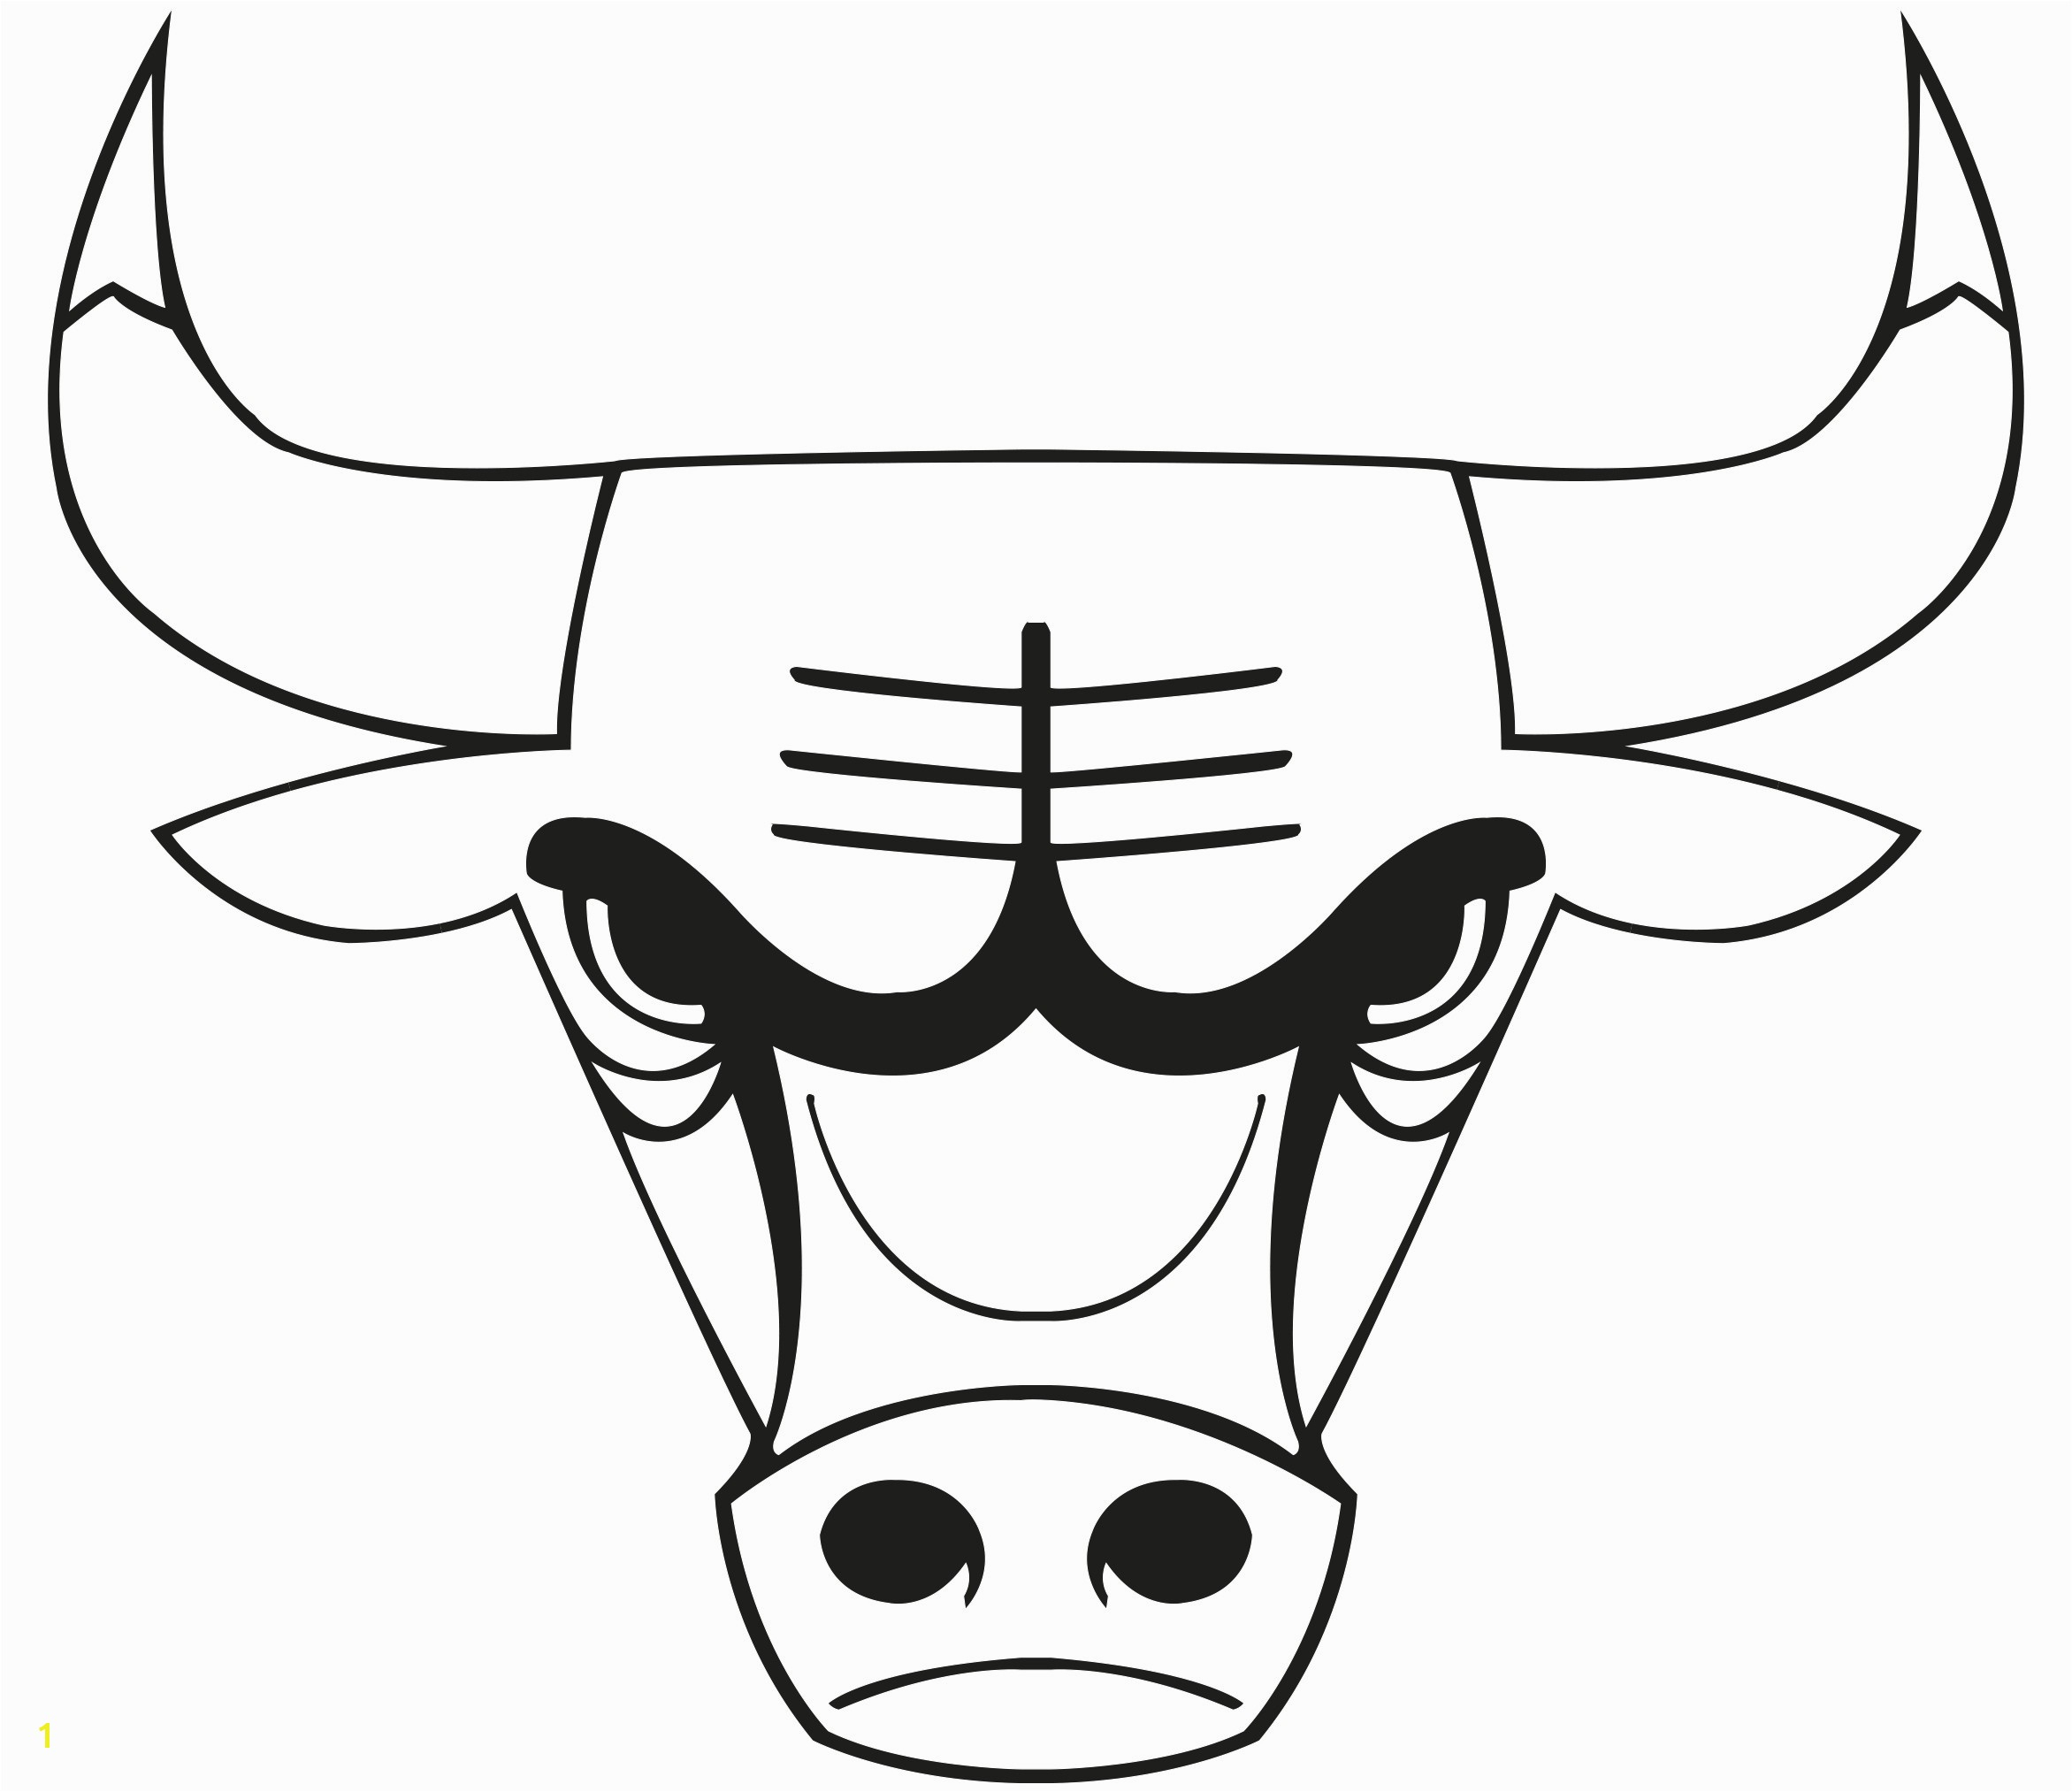 Chicago Bulls Coloring Pages  Collection 15s - Save it to your computer